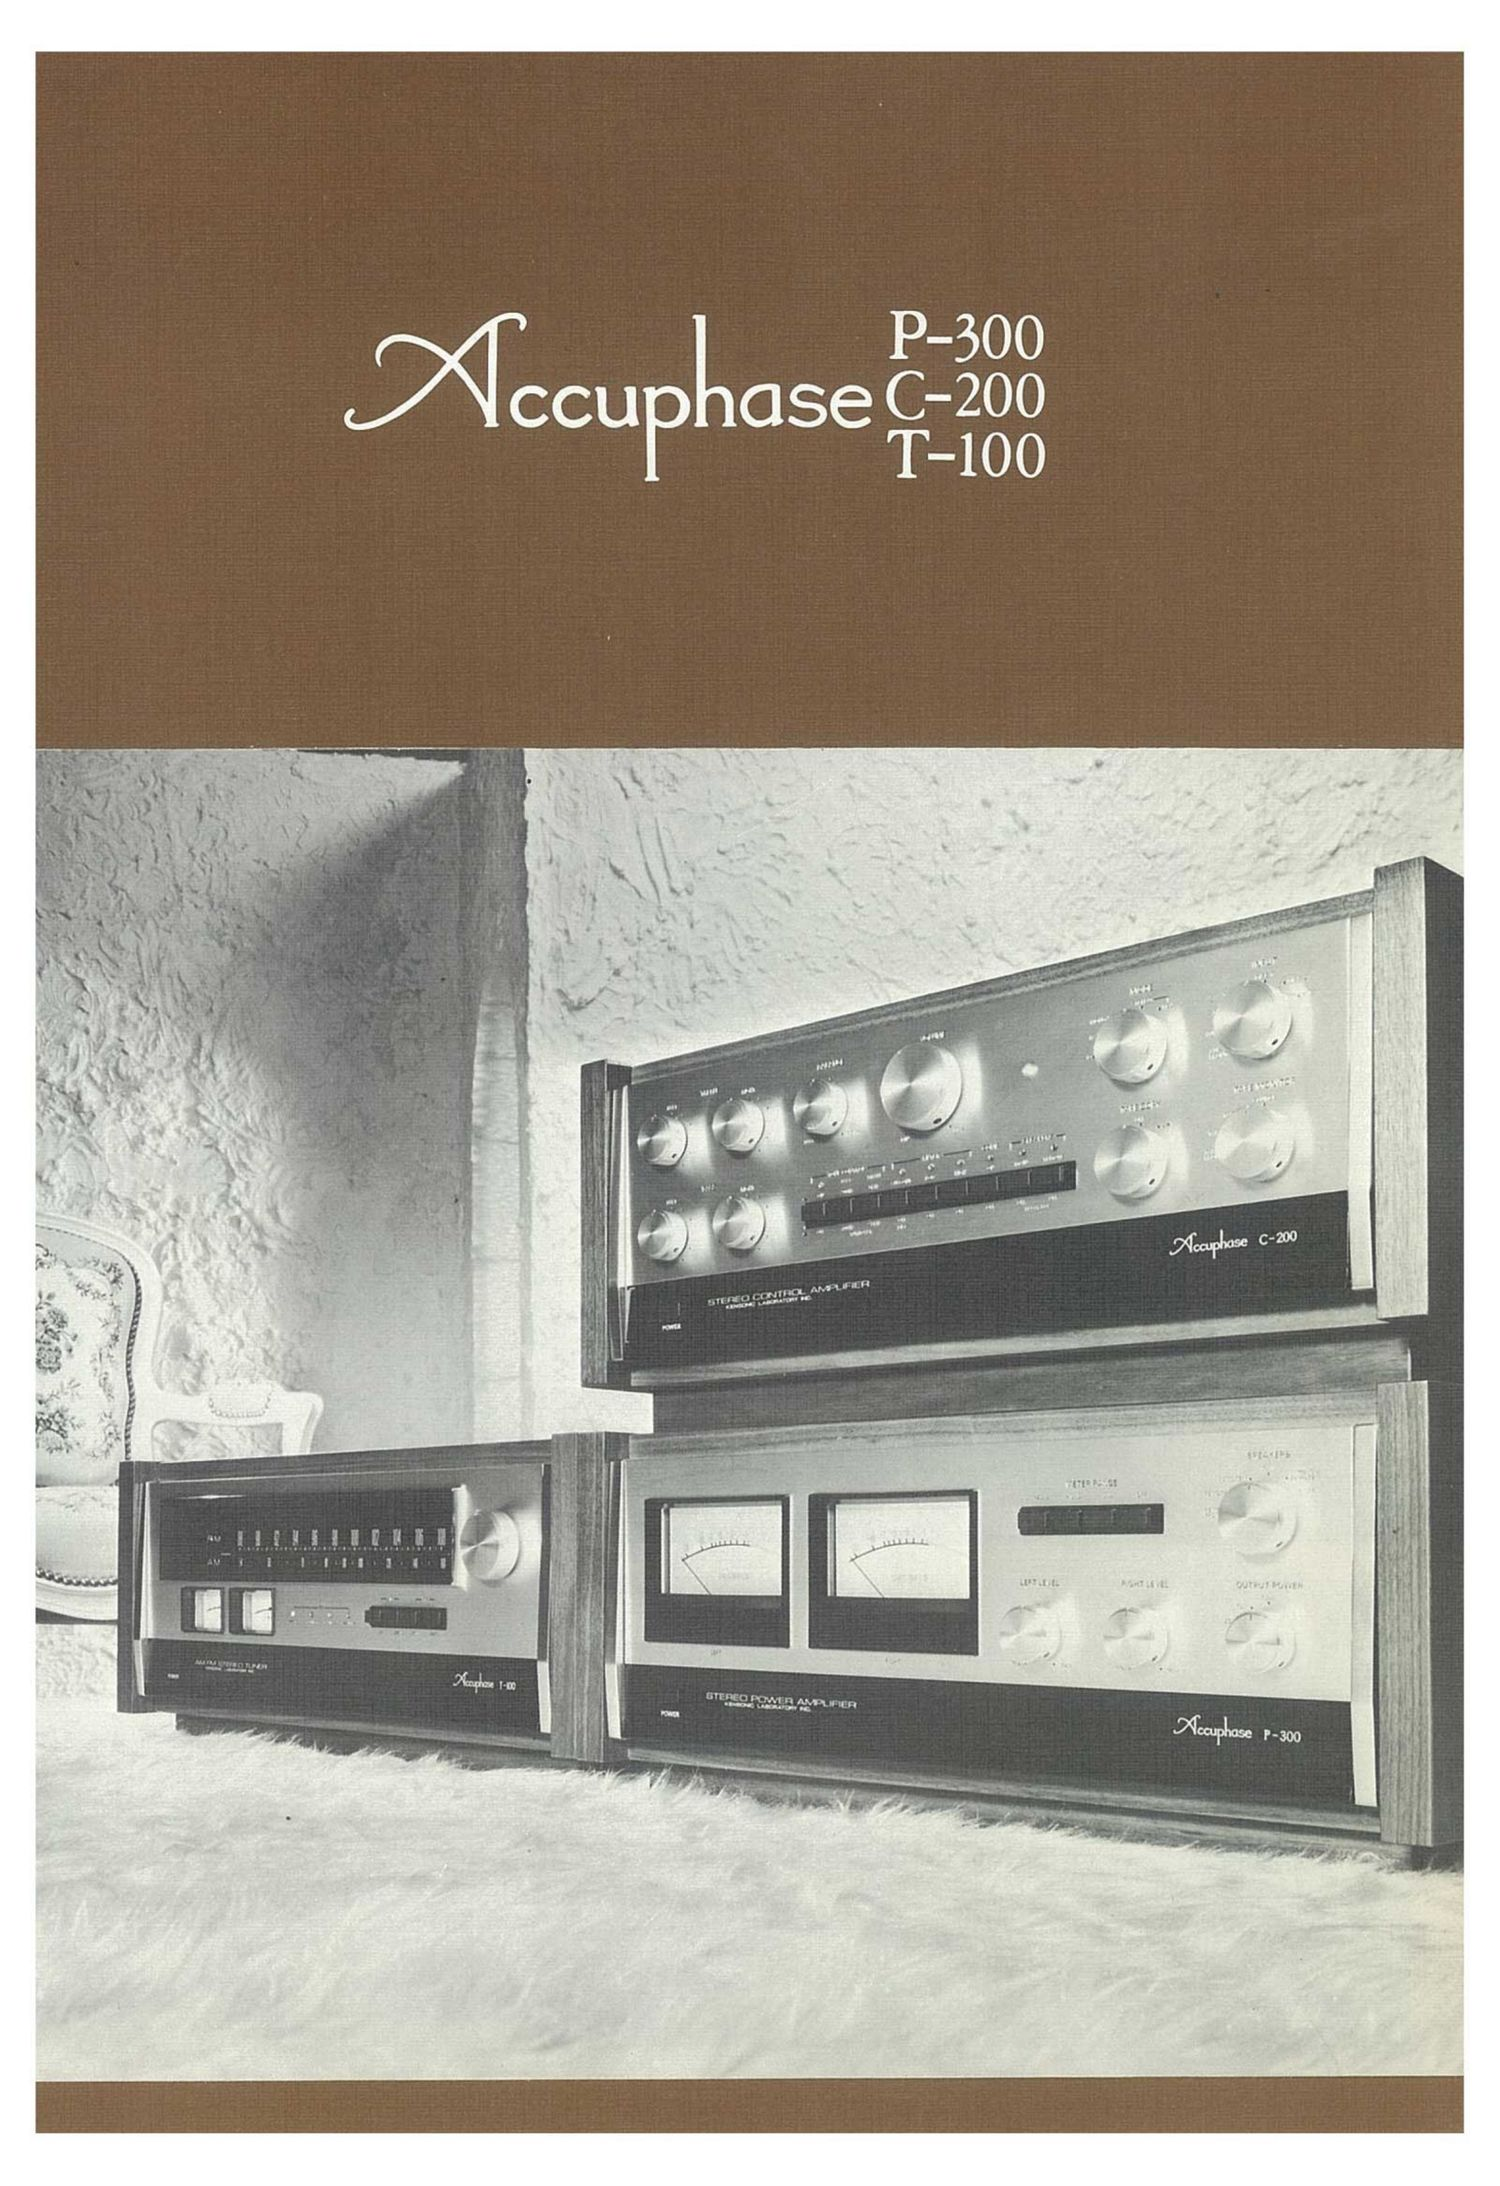 Accuphase C 200 P 300 T 100 Brochure